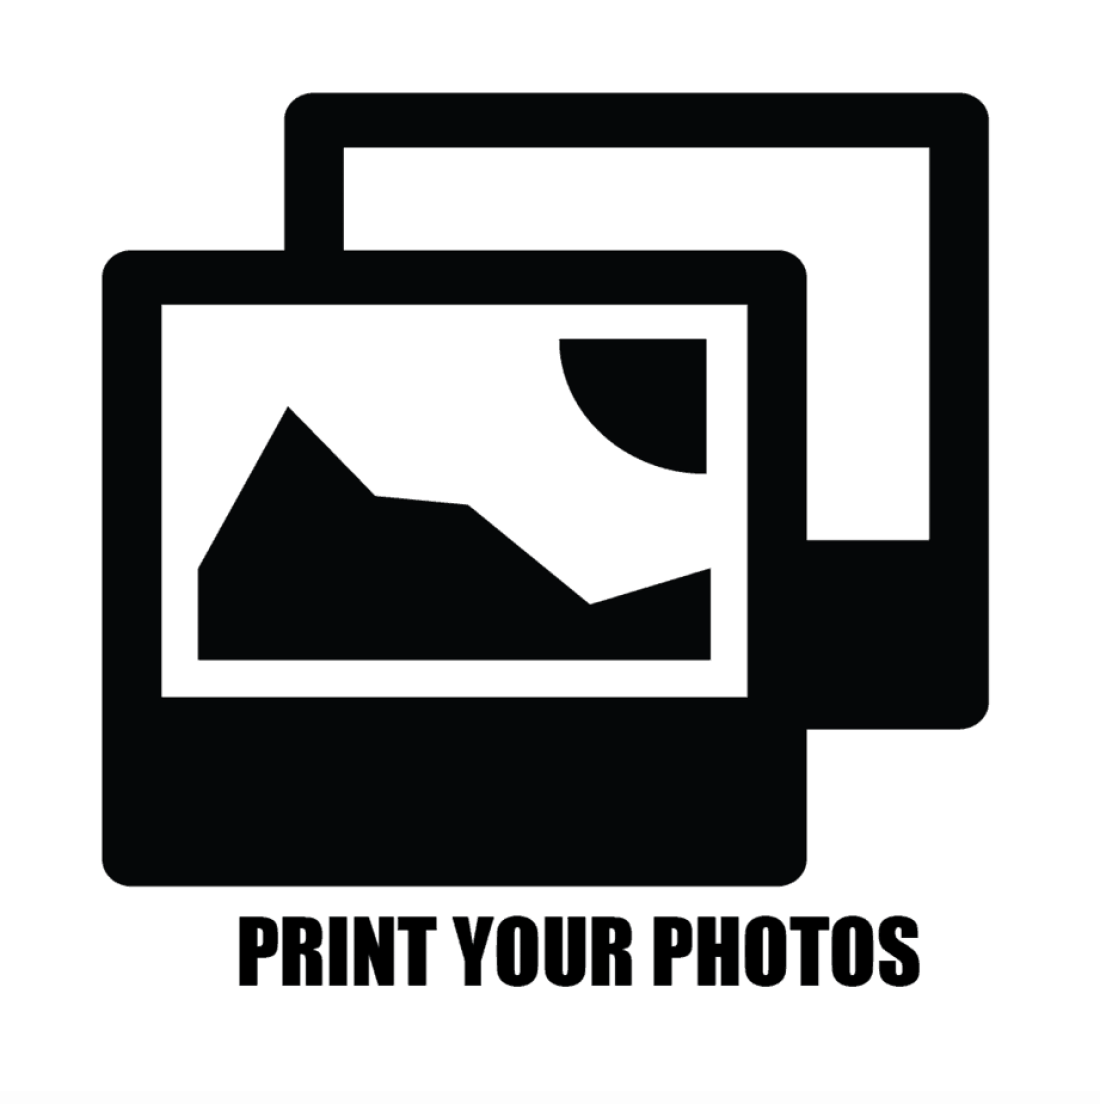 Print your photos for cheap